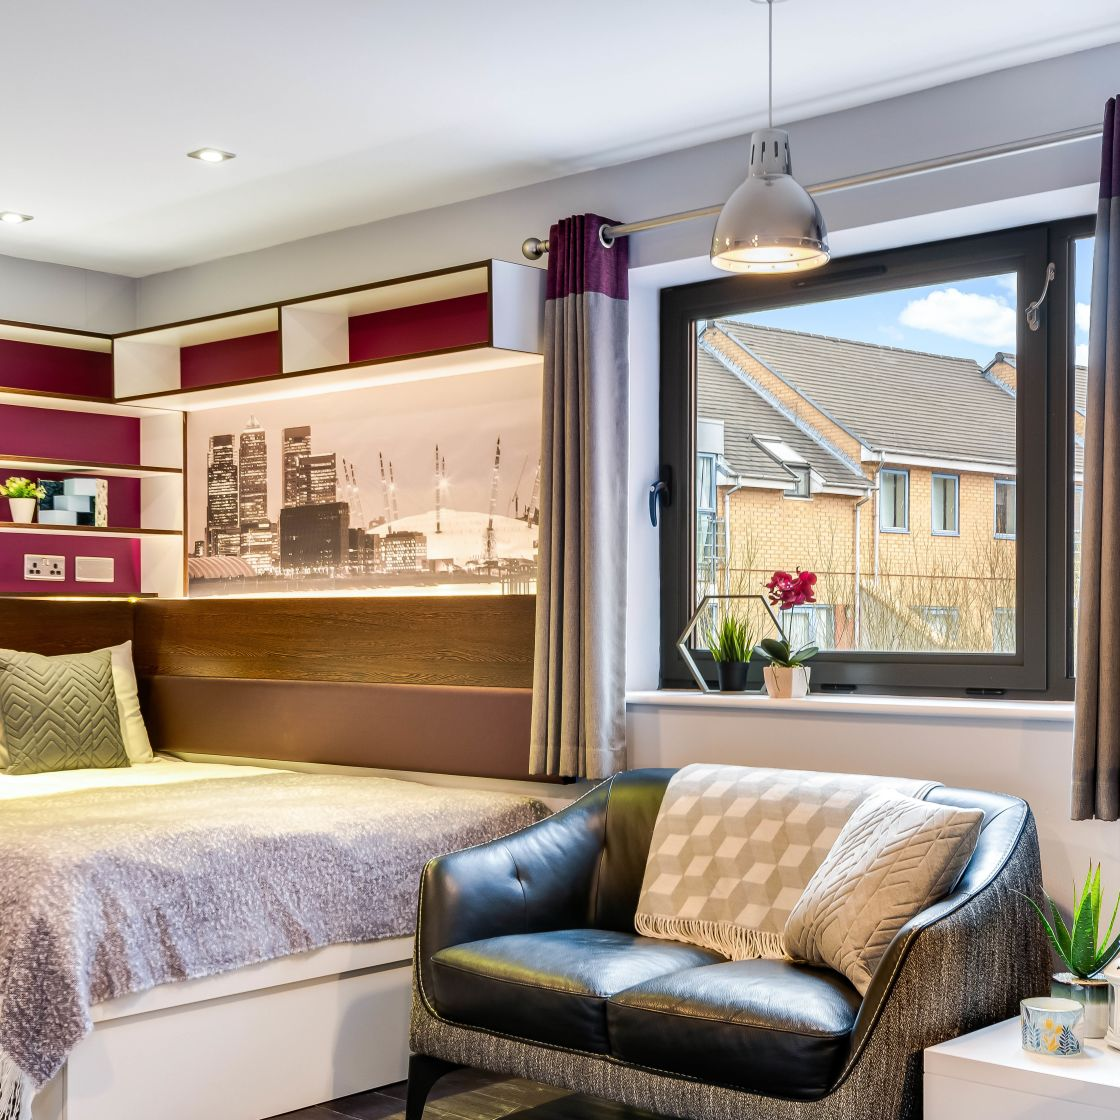 Elegance Student Apartment in Leeds with king size bed and sofa. IconInc, The Edge